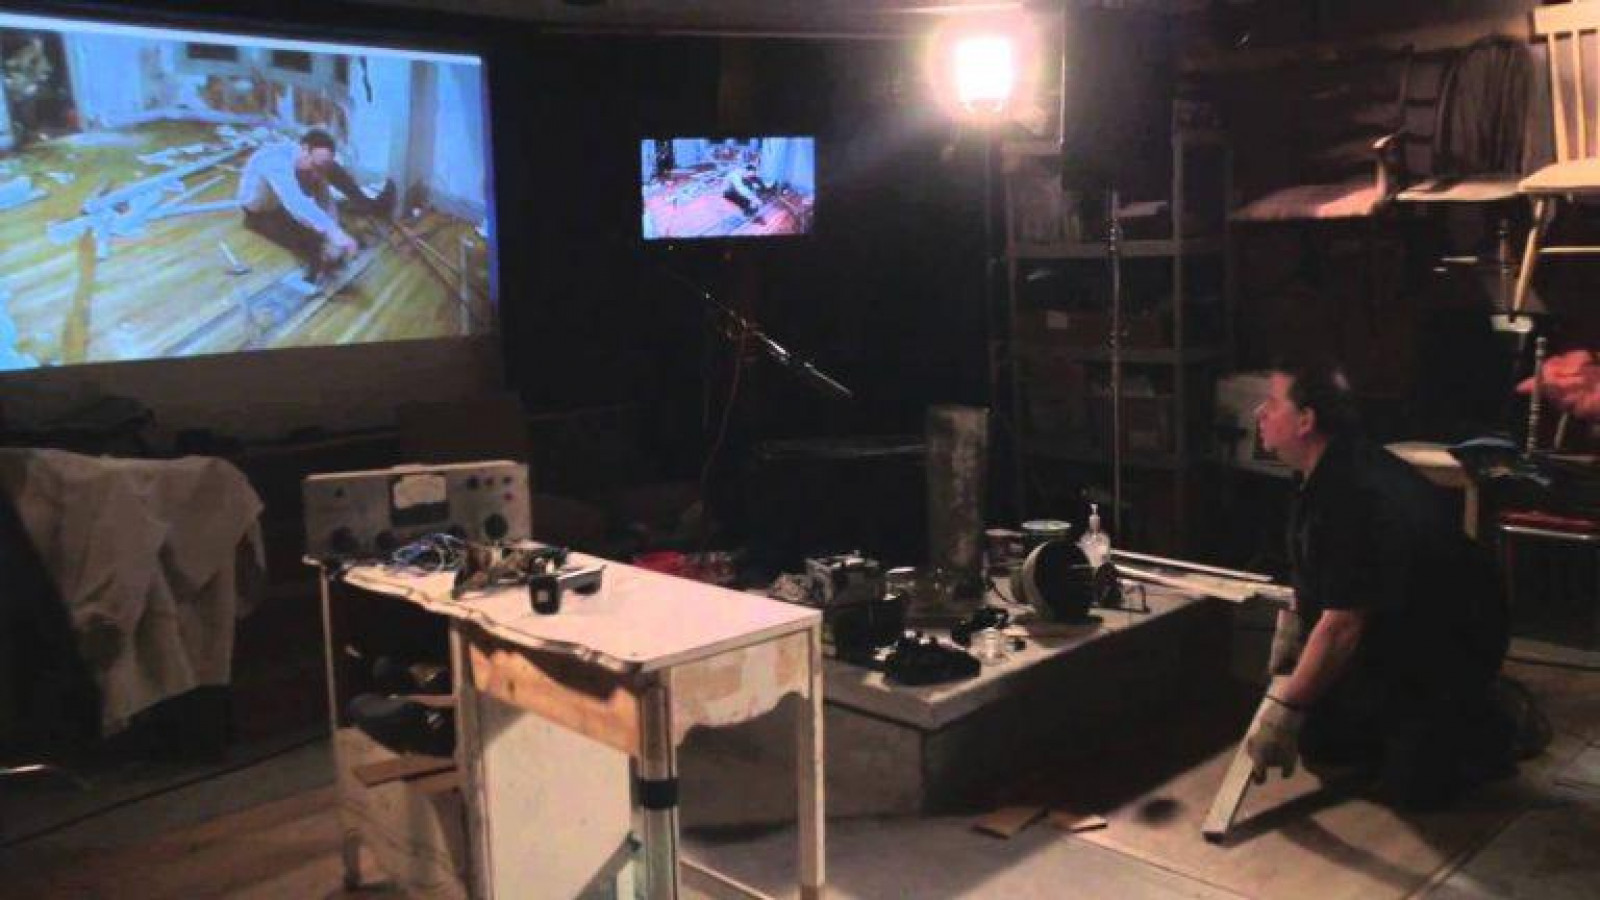 An image of a person kneeling in a dark room, lit by one lamp. They are surrounded by camera and other visual imagery kit and are looking at a projector screen and TV with an image of a person sitting on a wooden floor.